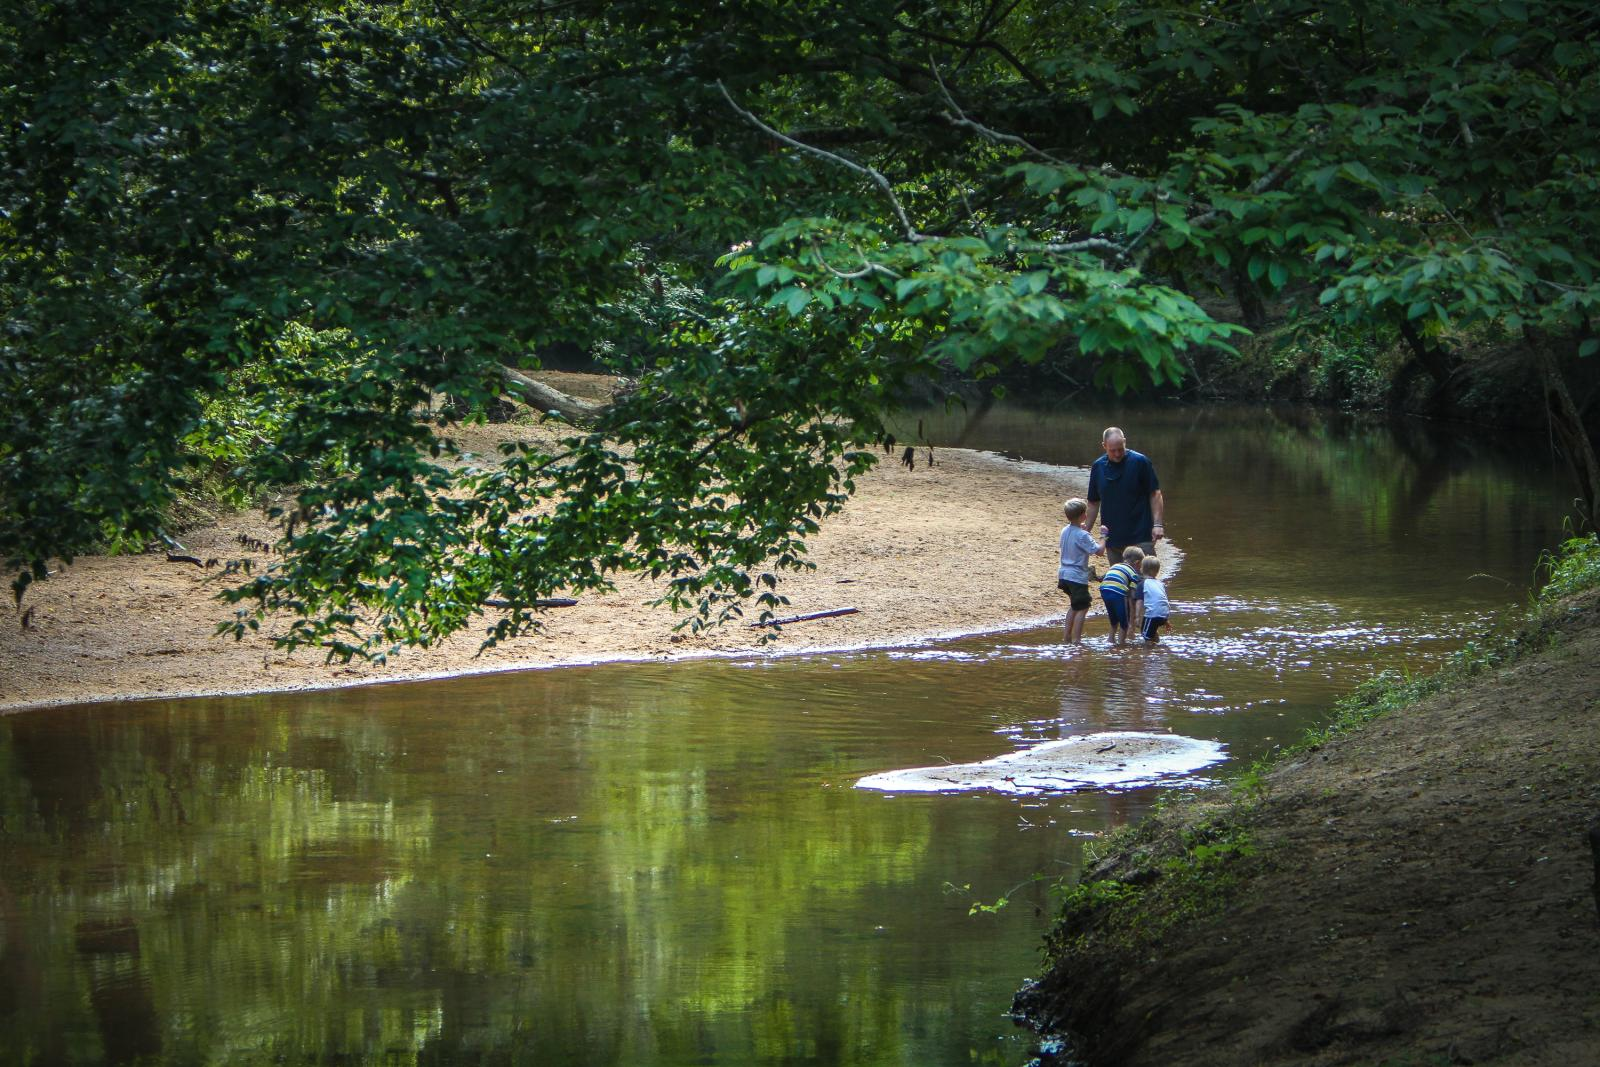 A man and three children play in a gentle creek.